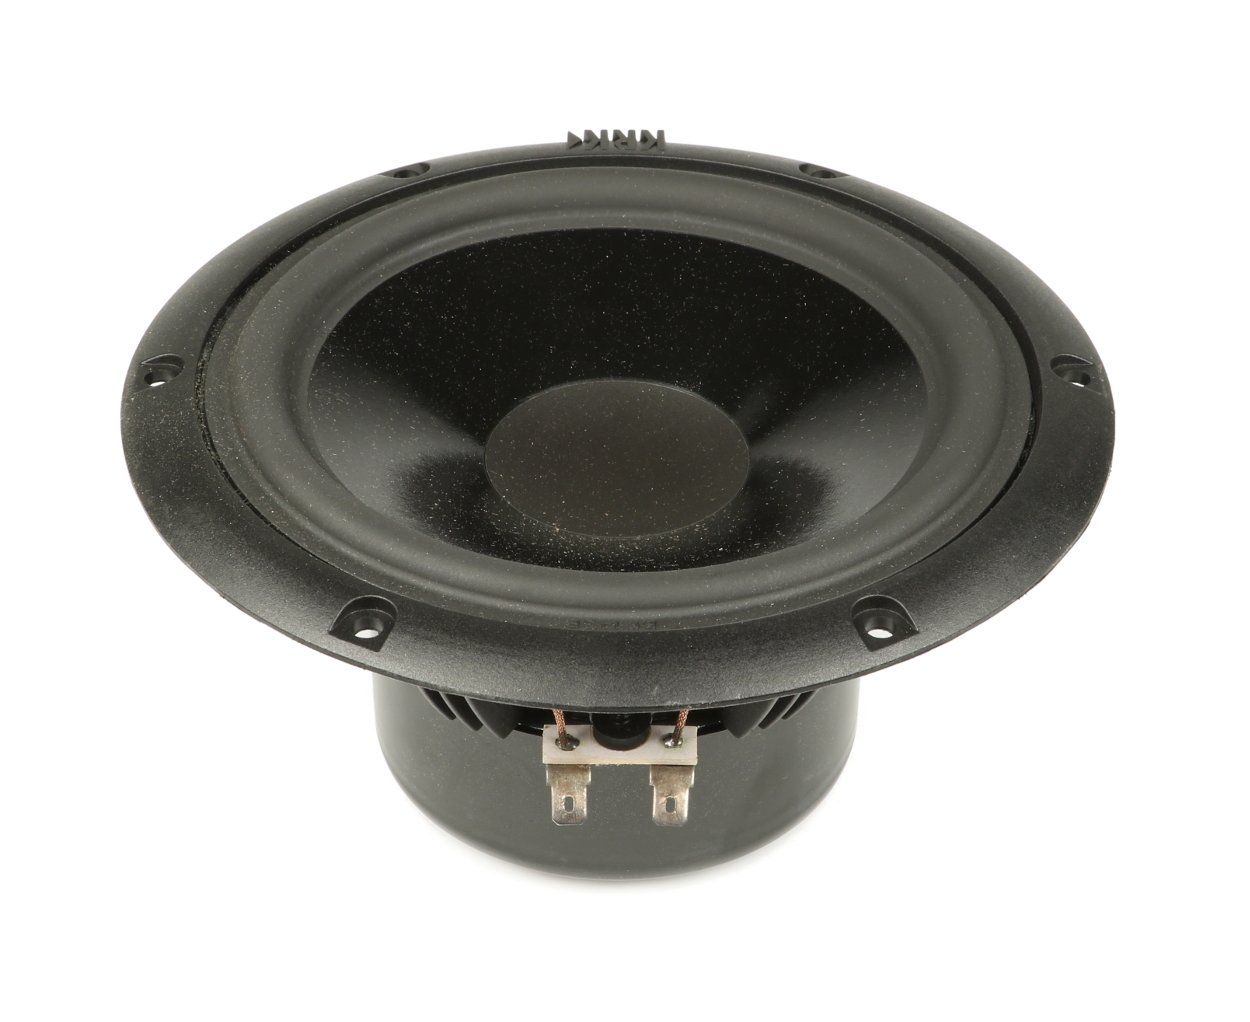 V6 Series 1 Replacement Woofer